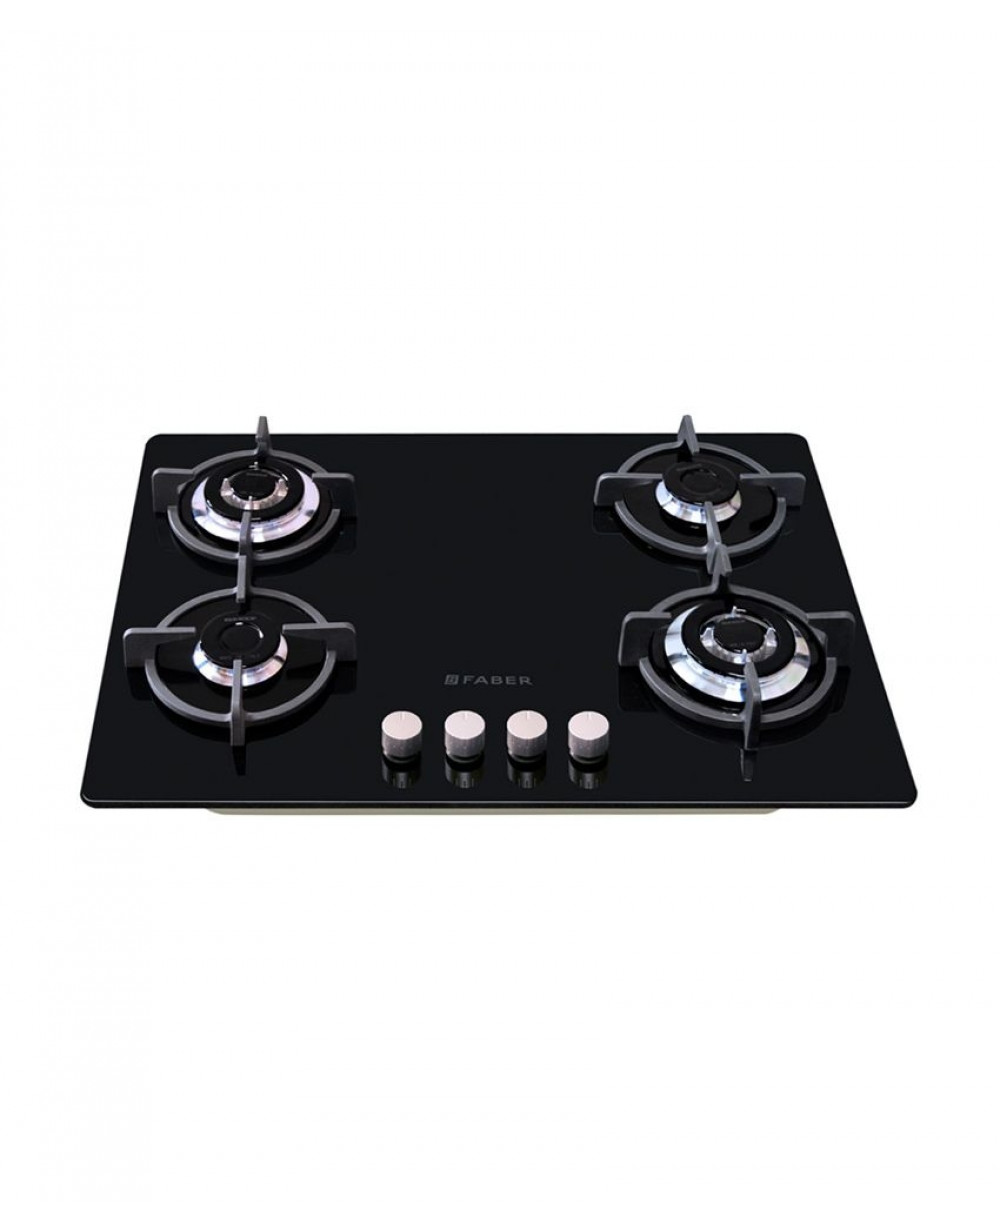 Faber GB 40 MT BO 4 Burner Glass Built in Hob